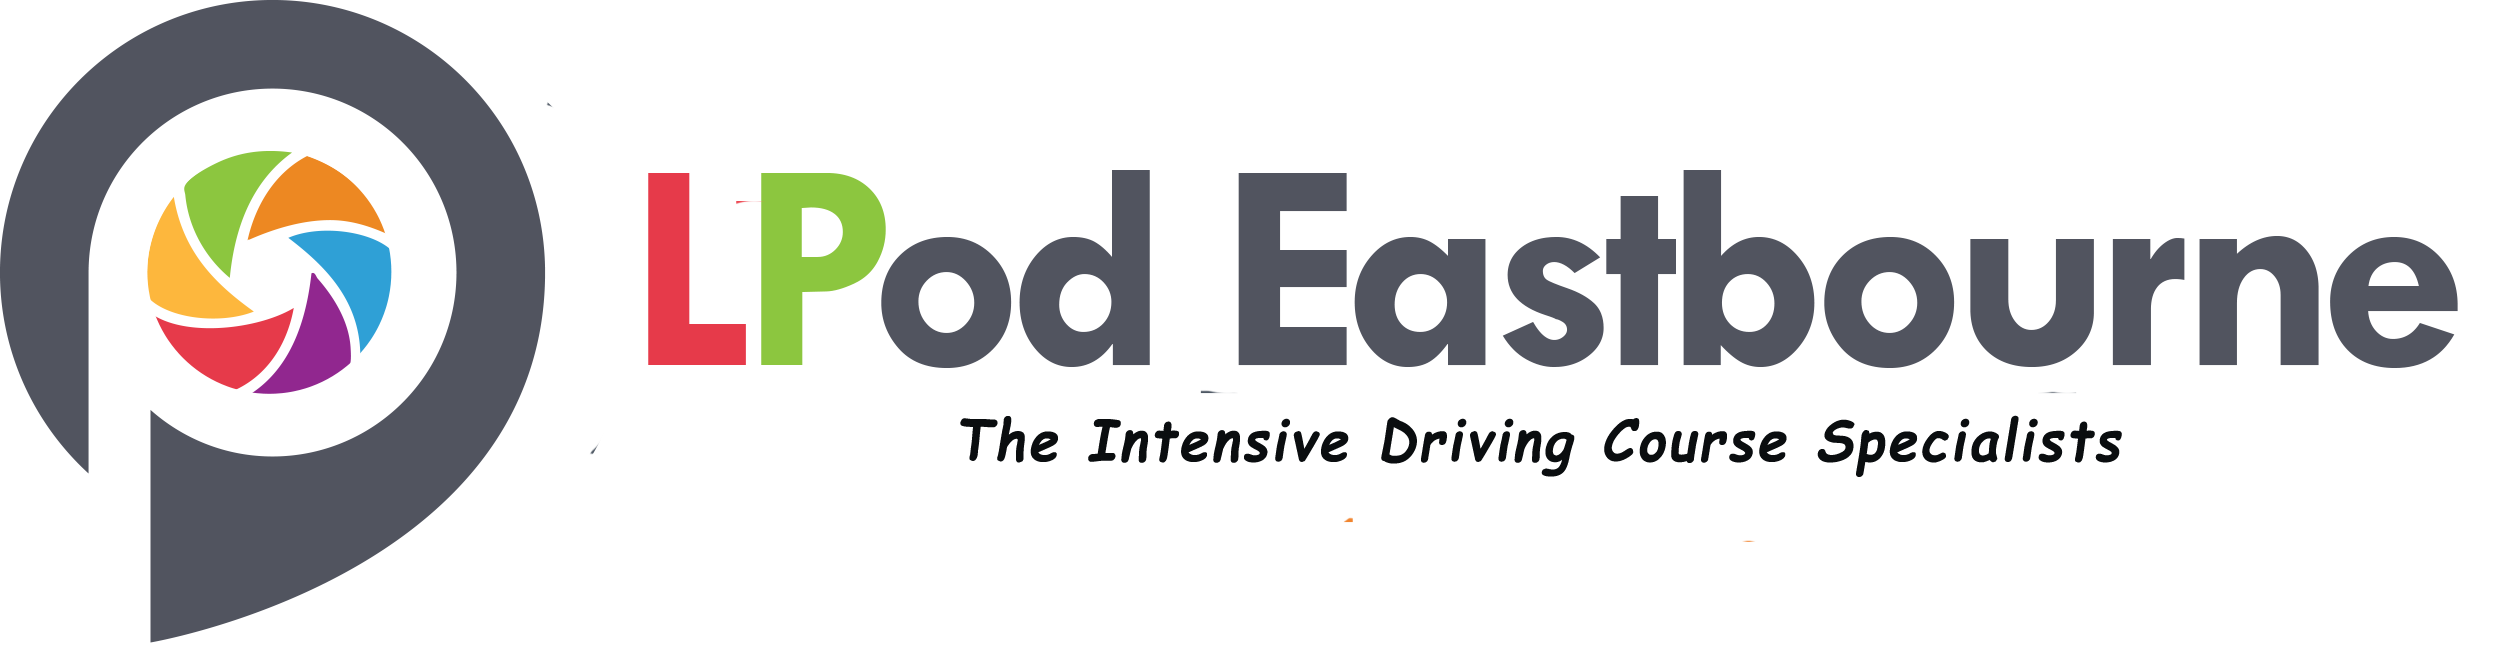 intensive driving courses eastbourne, intensive driving lessons eastbourne, intensive driving lessons eastbourne